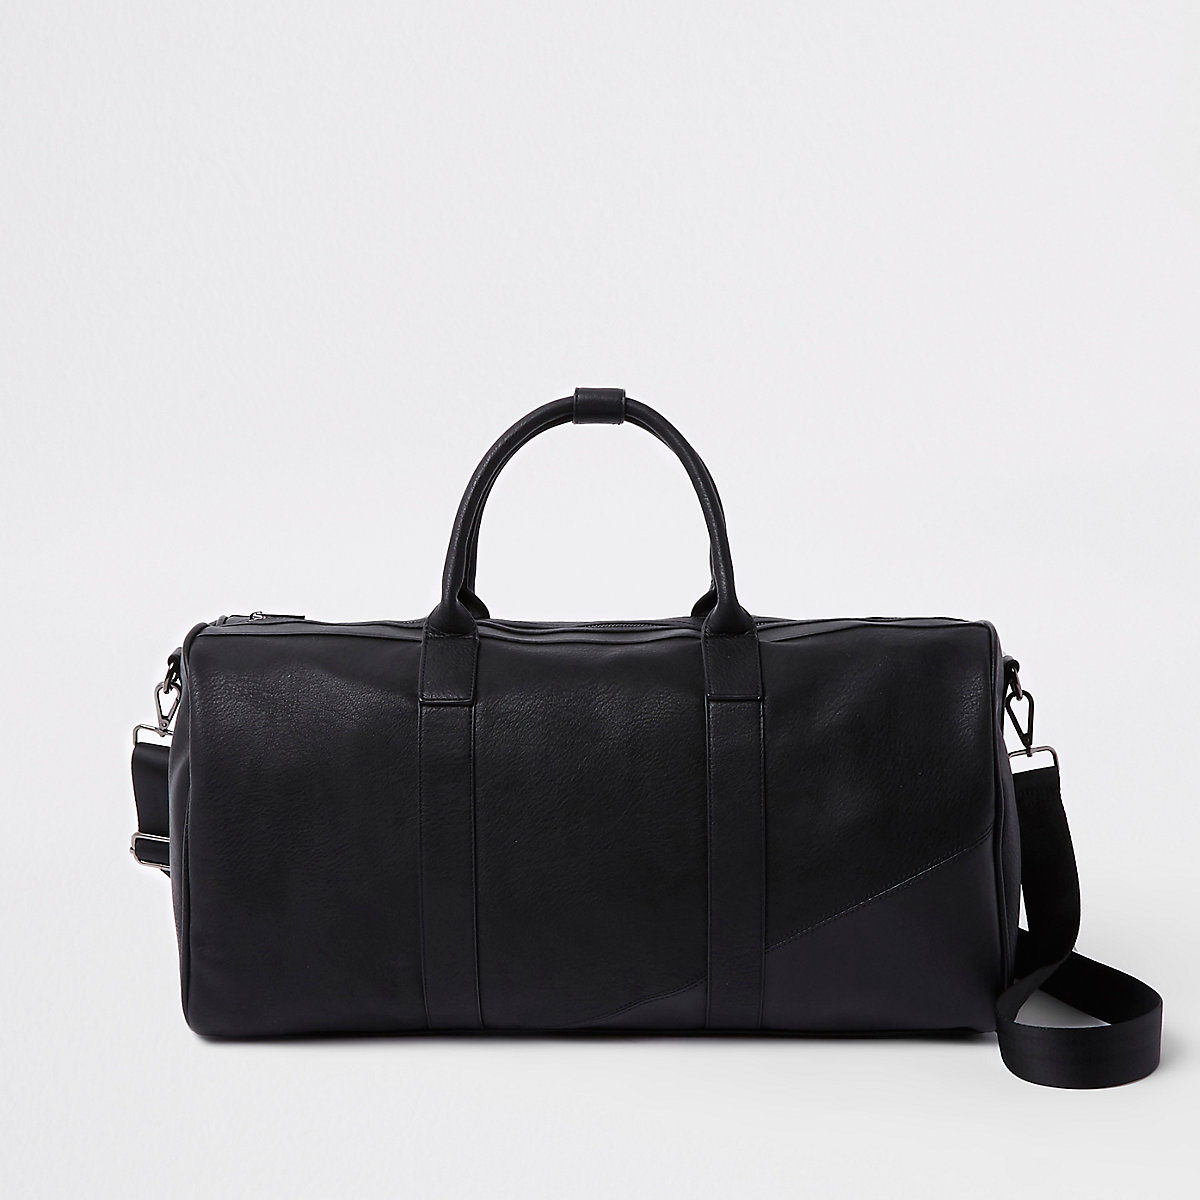 Black holdall bag